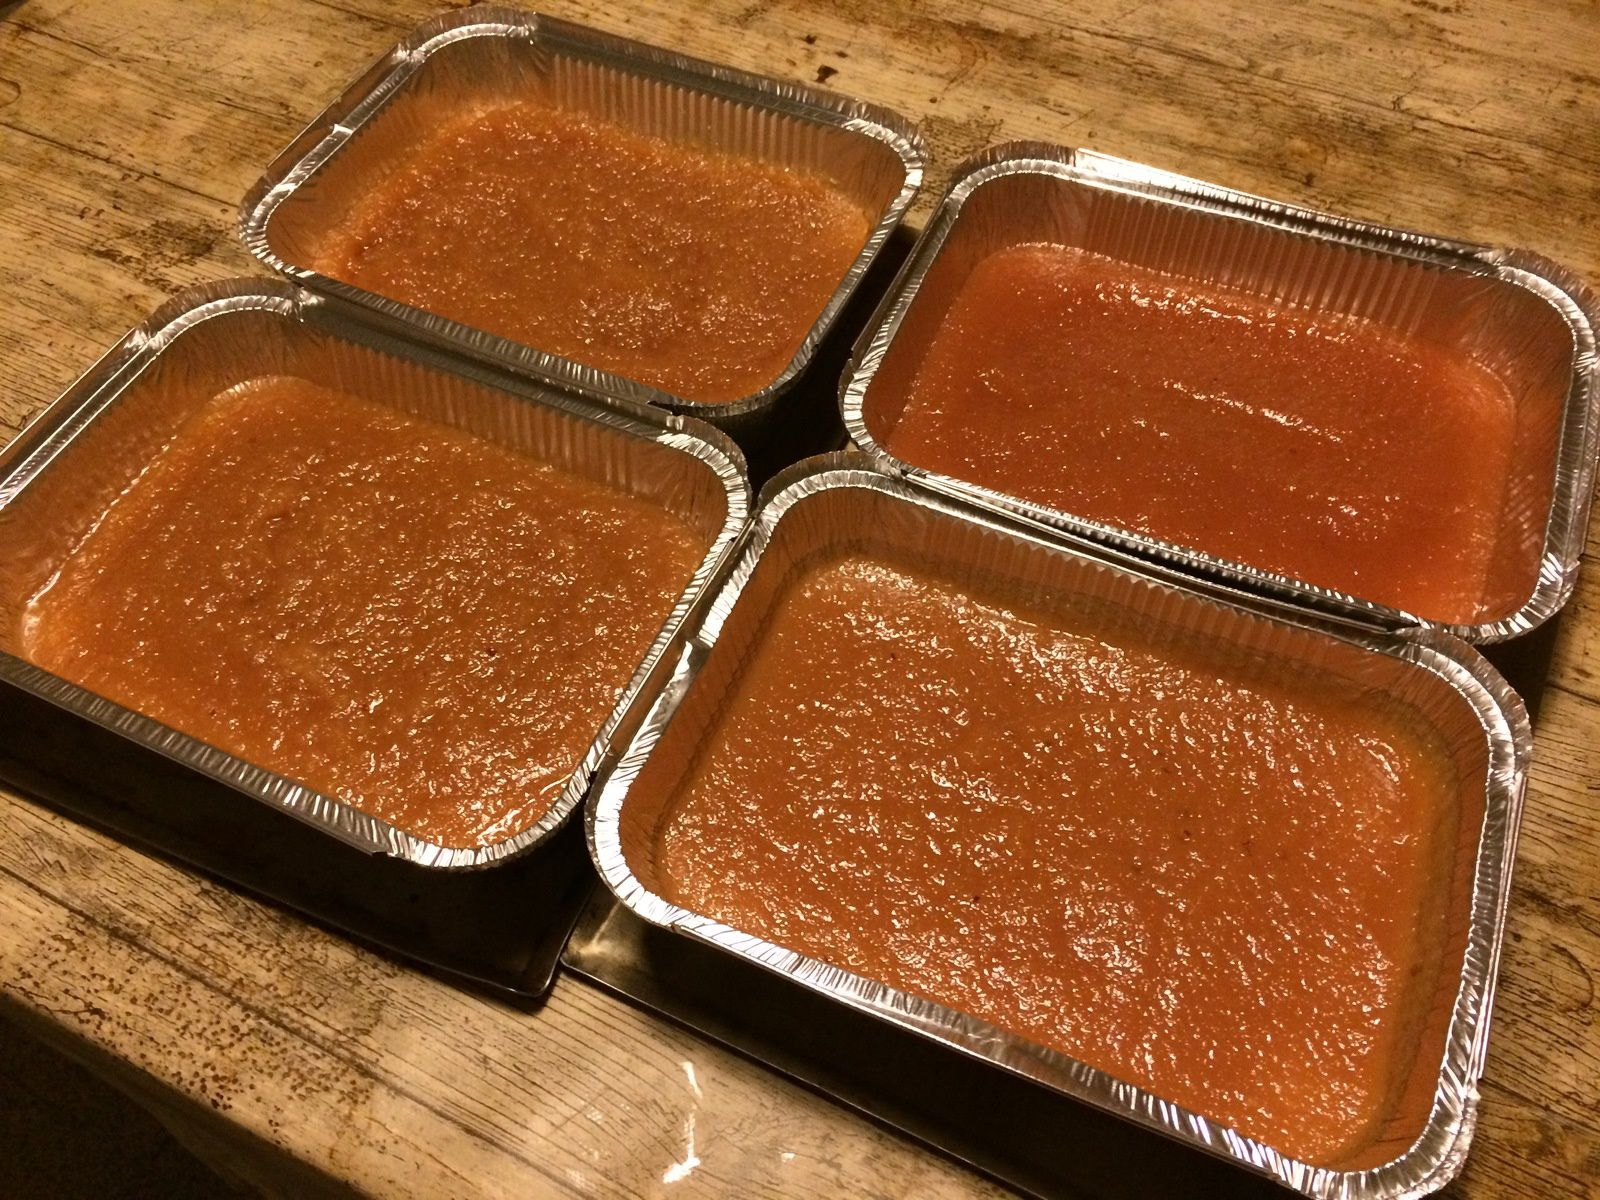 Pate de coings au thermomix